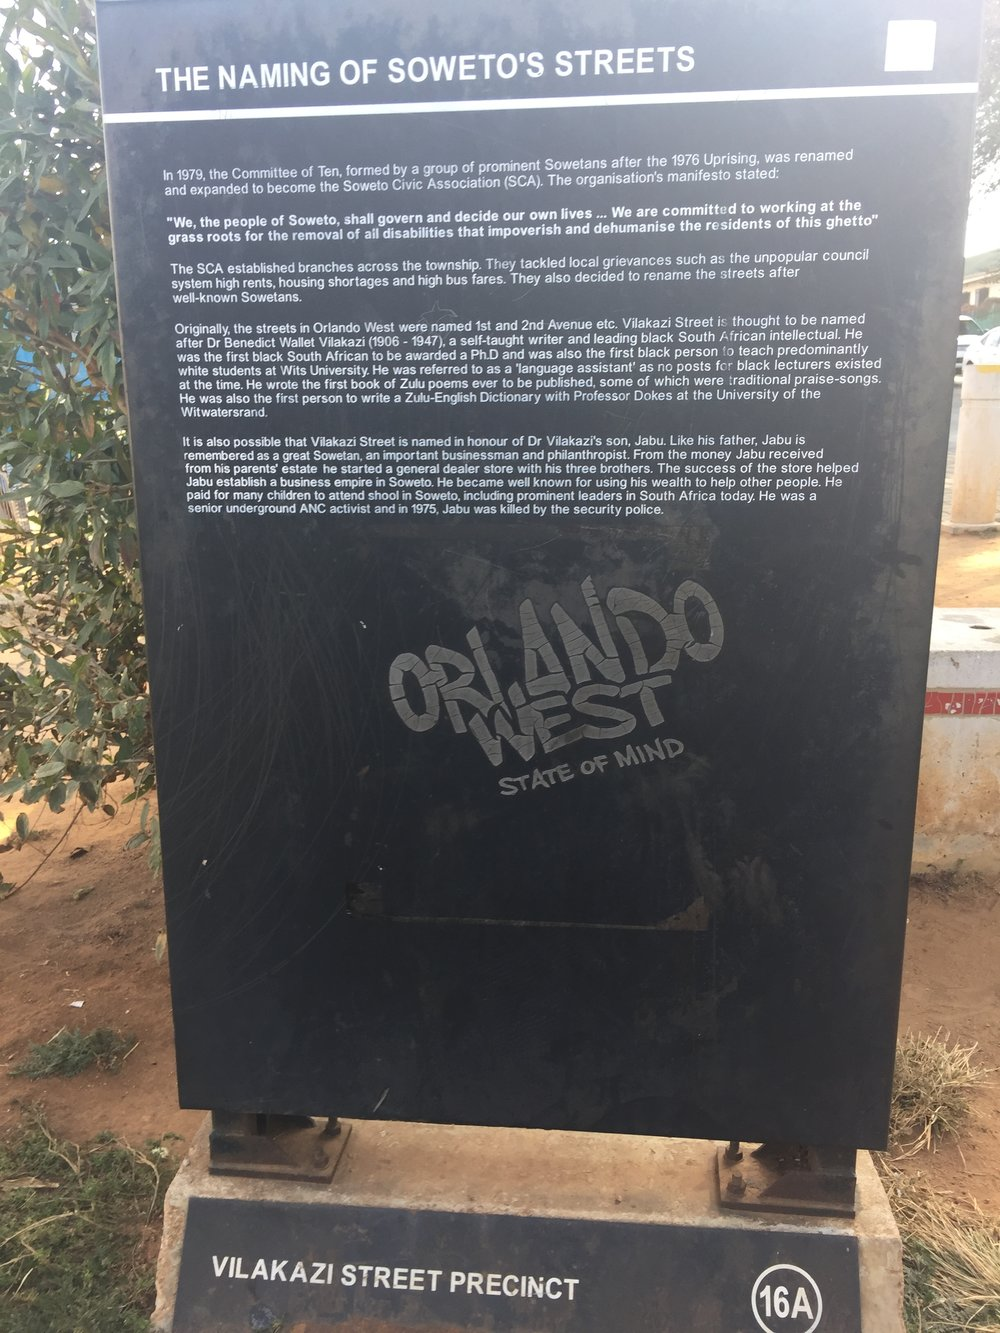 Sign at Vilakazi Street in Soweto